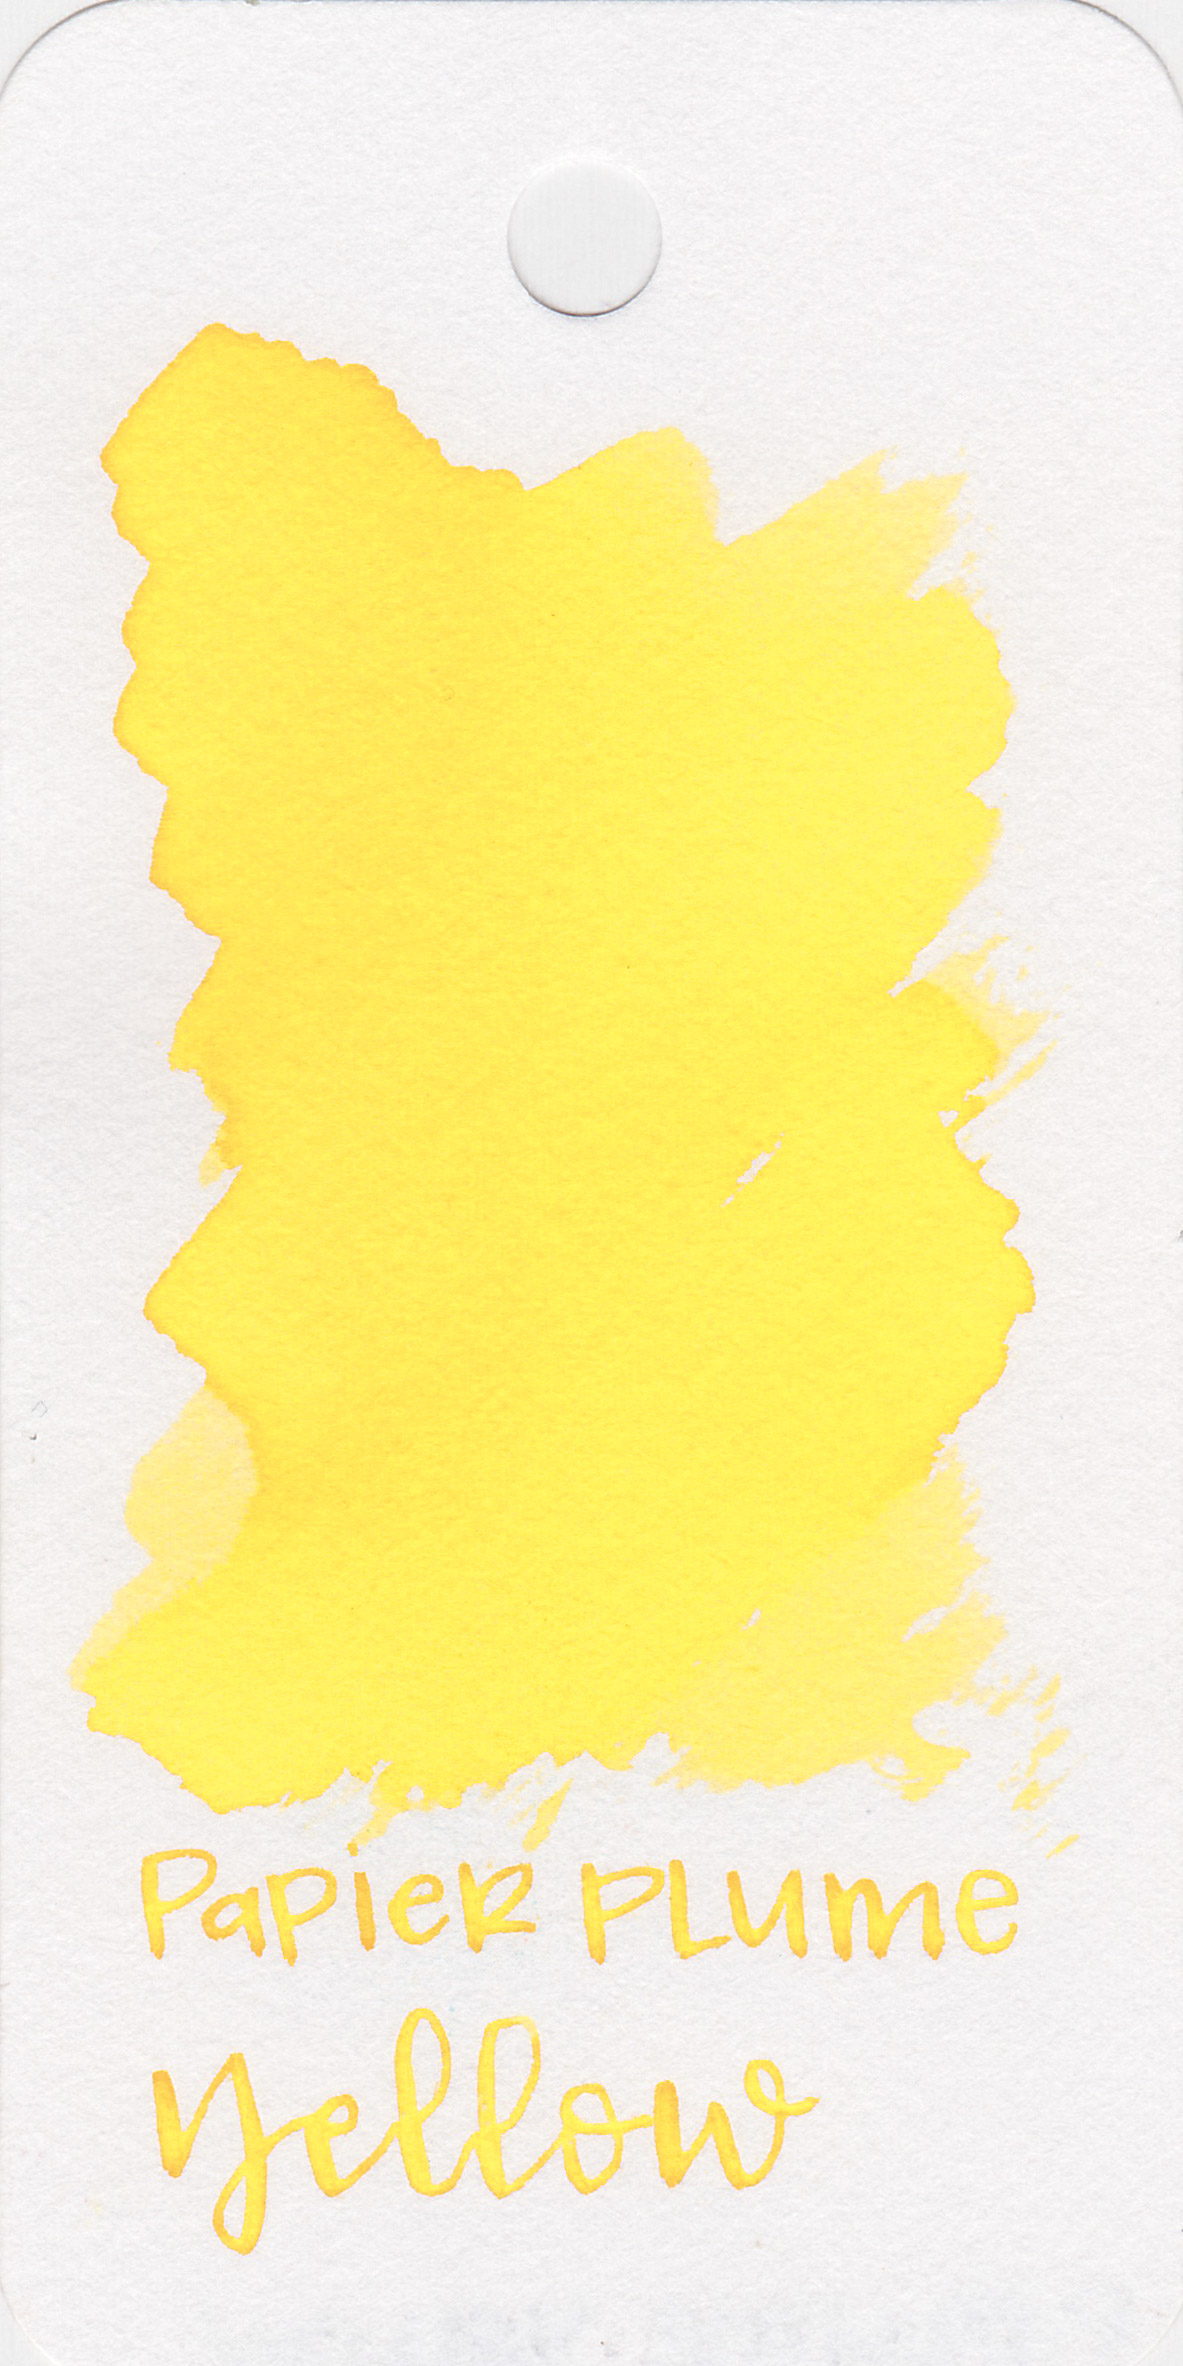 pp-yellow-1.jpg